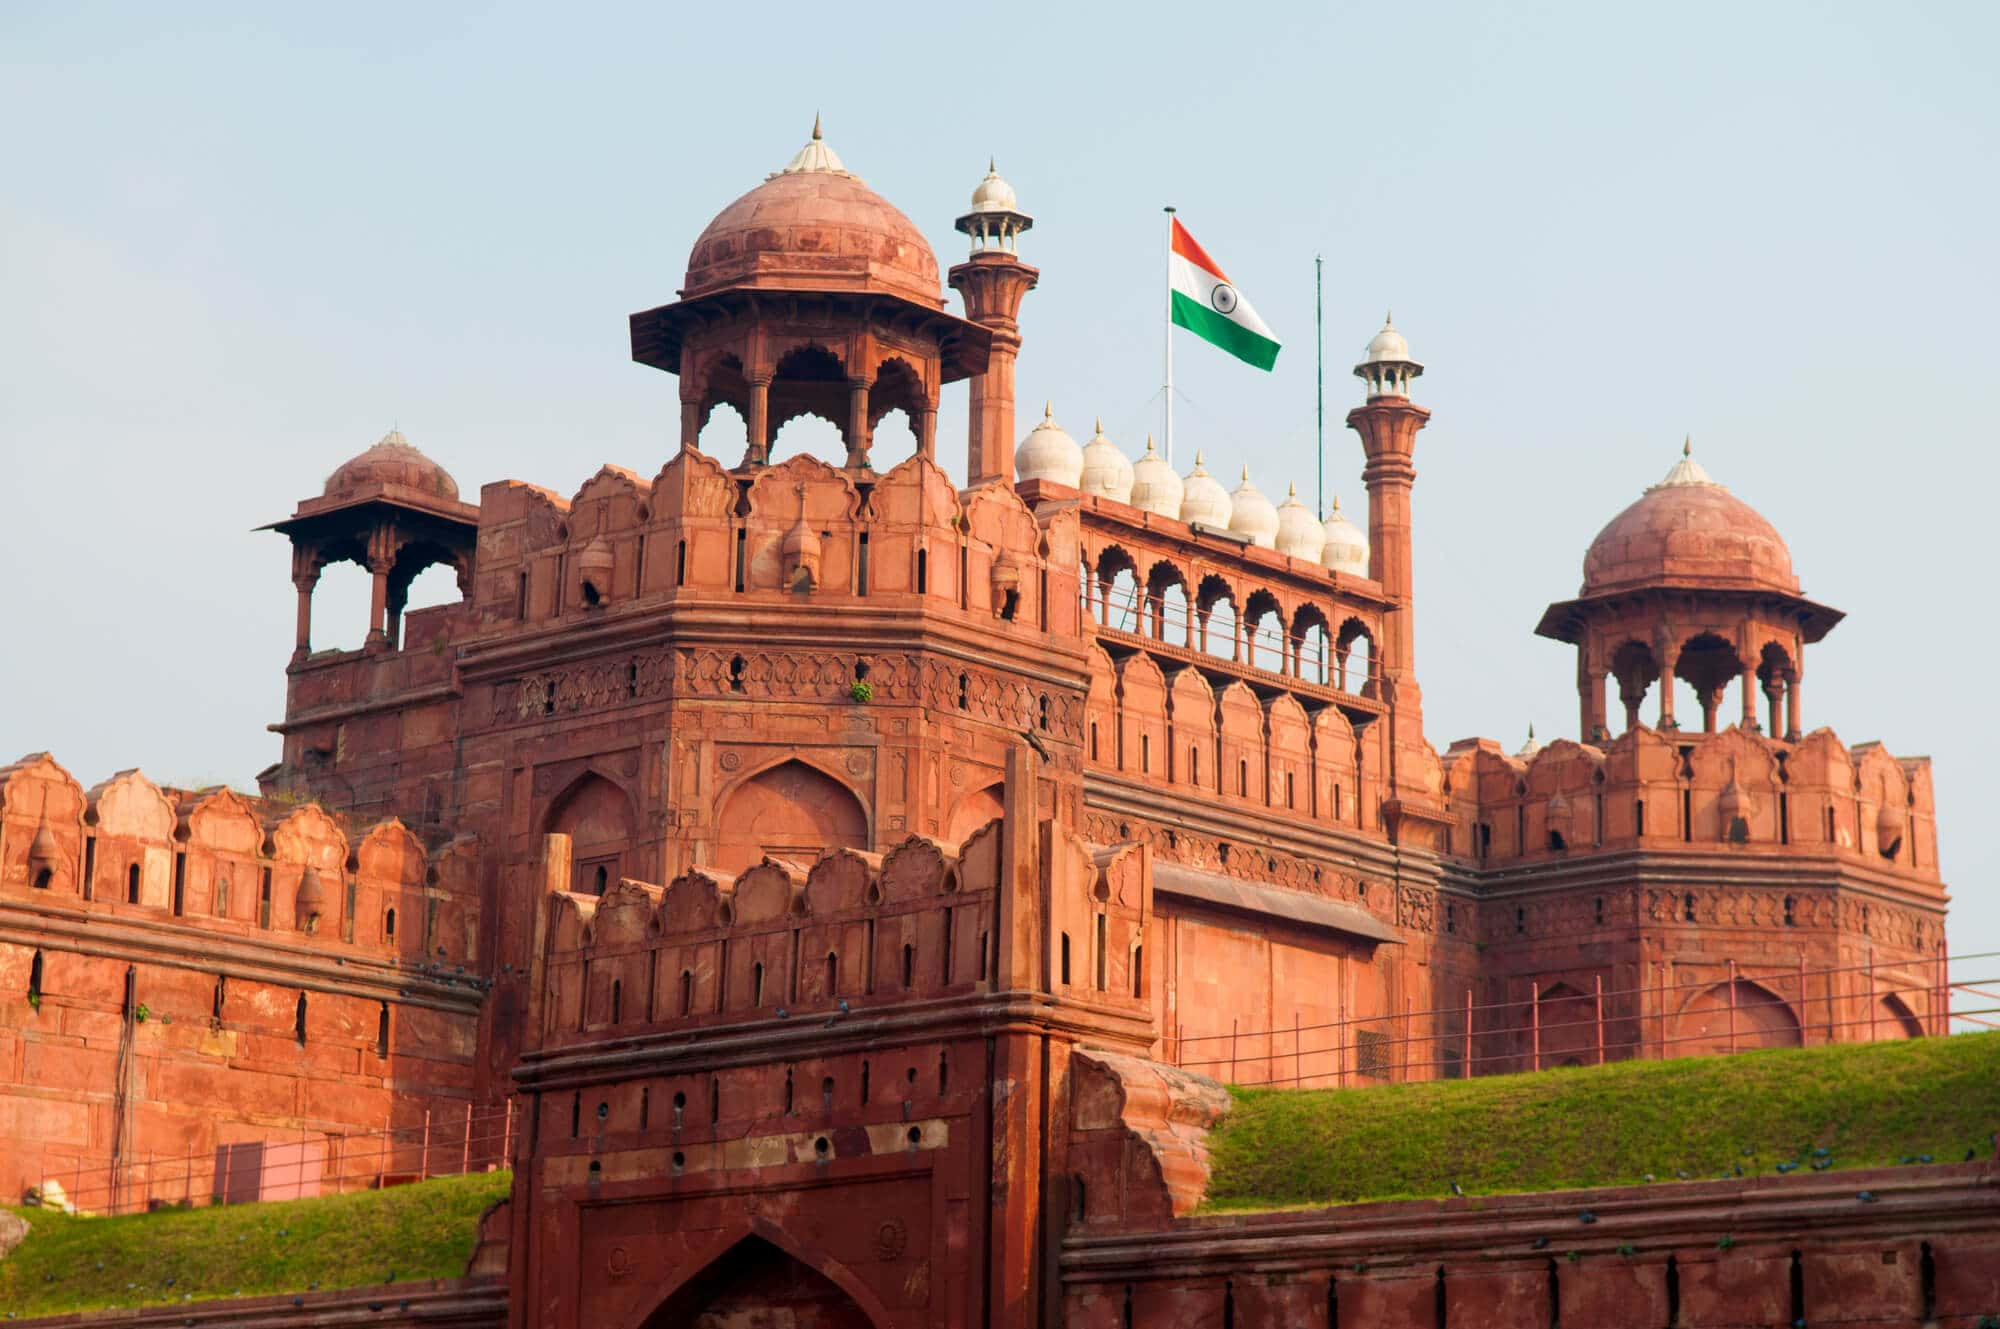 A first timer's guide to Delhi, India - Red Fort